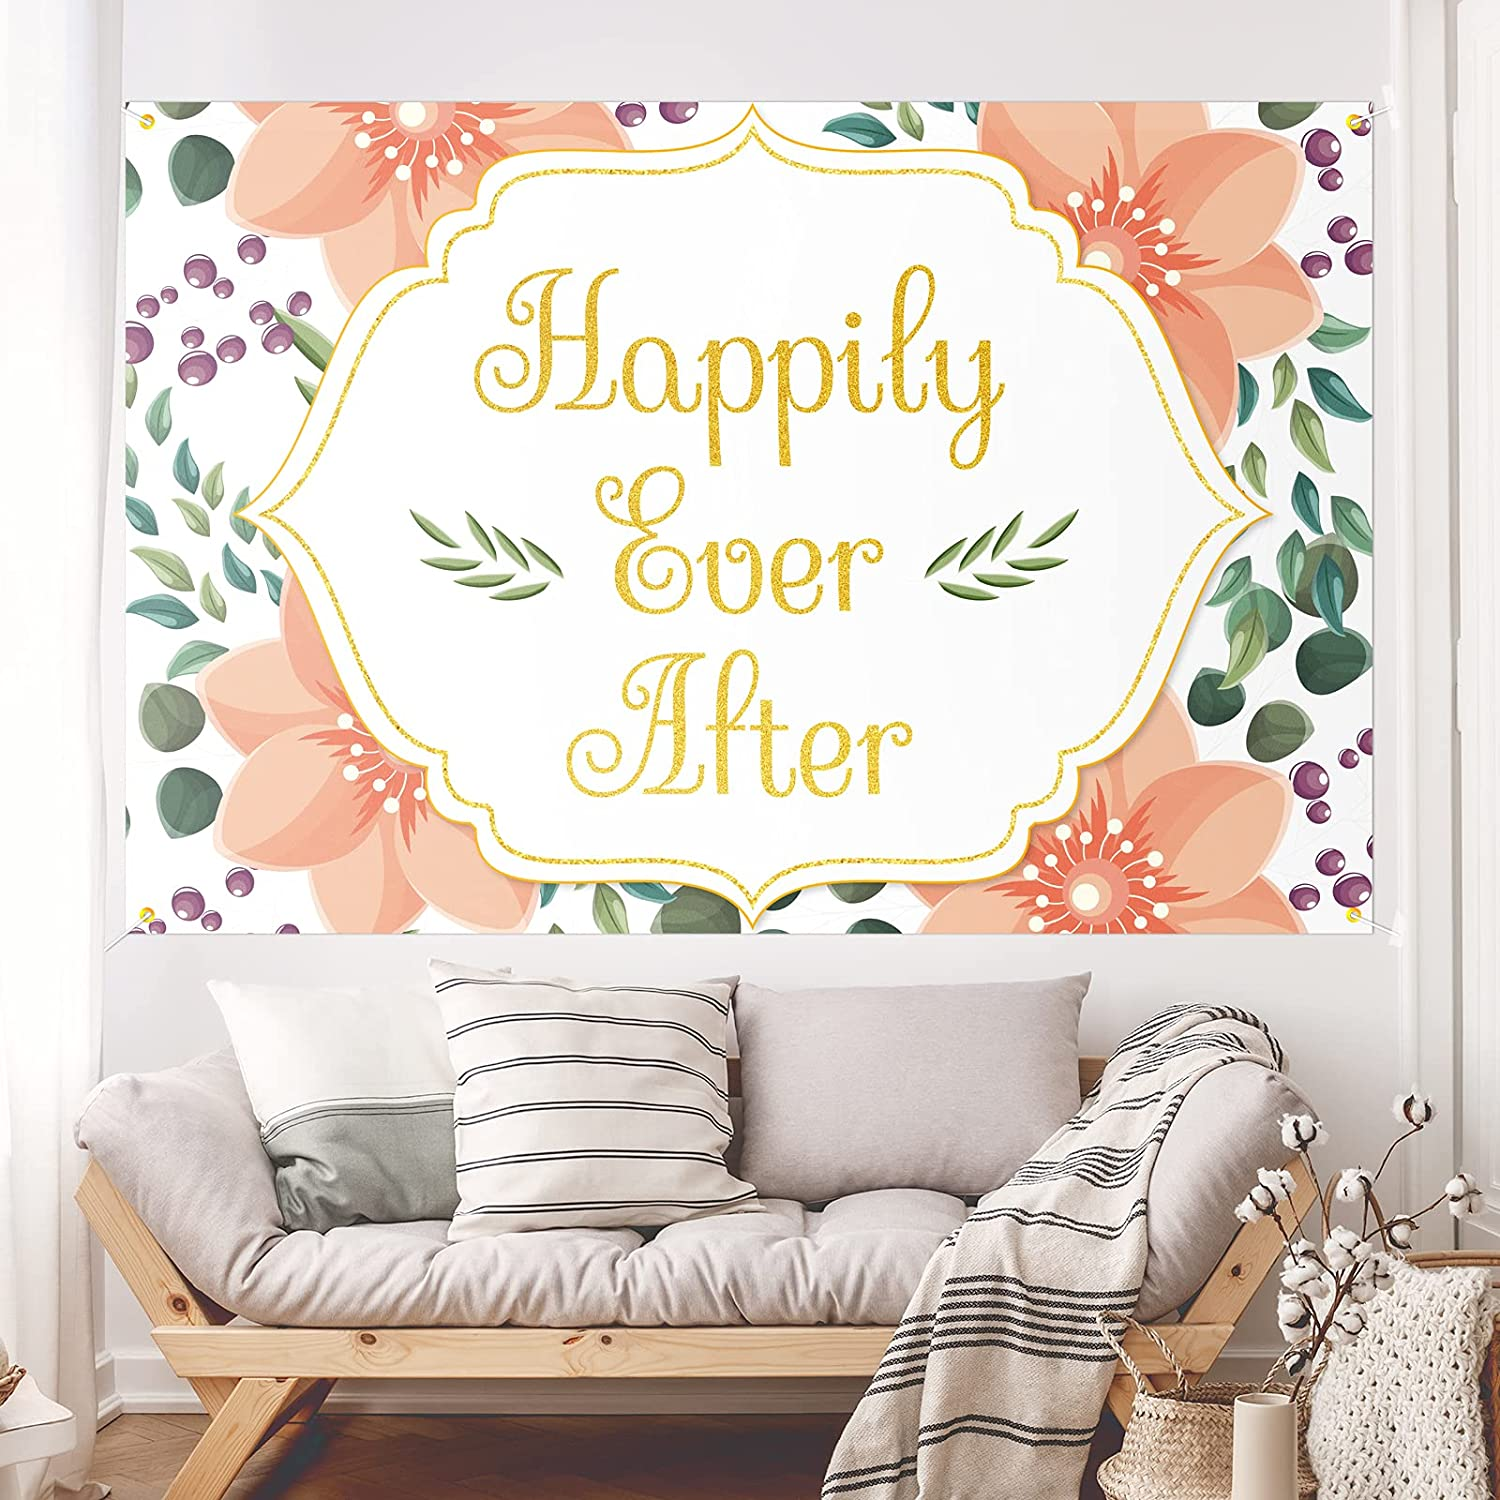 Happily Ever After Backdrop Banner Decor White – Floral Wedding Party Theme Decorations Bridal Shower for Women Supplies